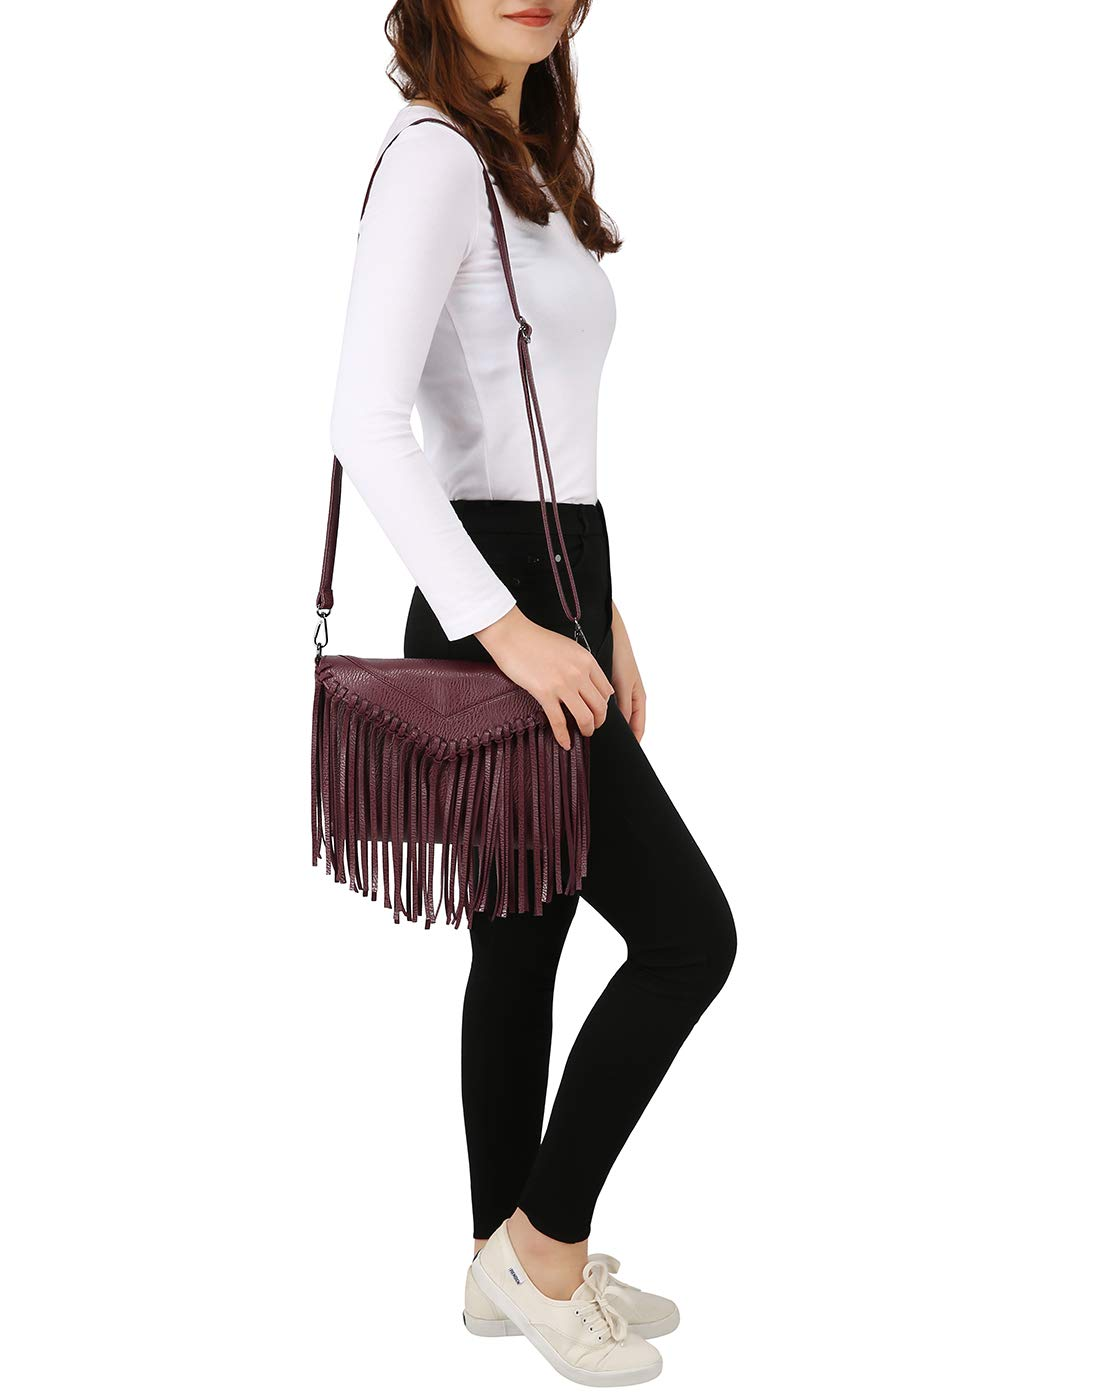 HDE Women's PU Leather Hobo Fringe Crossbody Tassel Purse Vintage Small Handbag by HDE (Image #4)